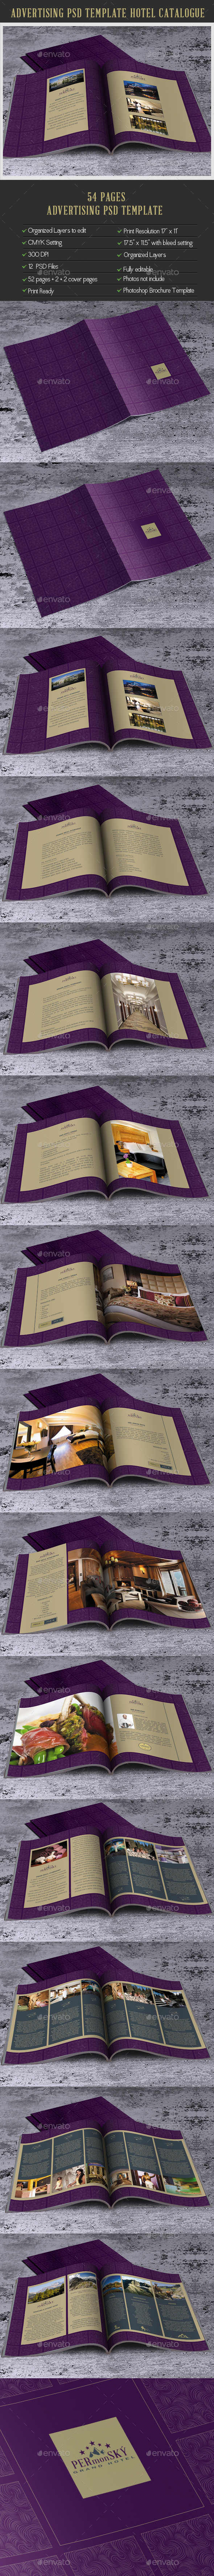 Photoshop Brochure Template for Hotel 52 Pages & Covers Pages. - Brochures Print Templates